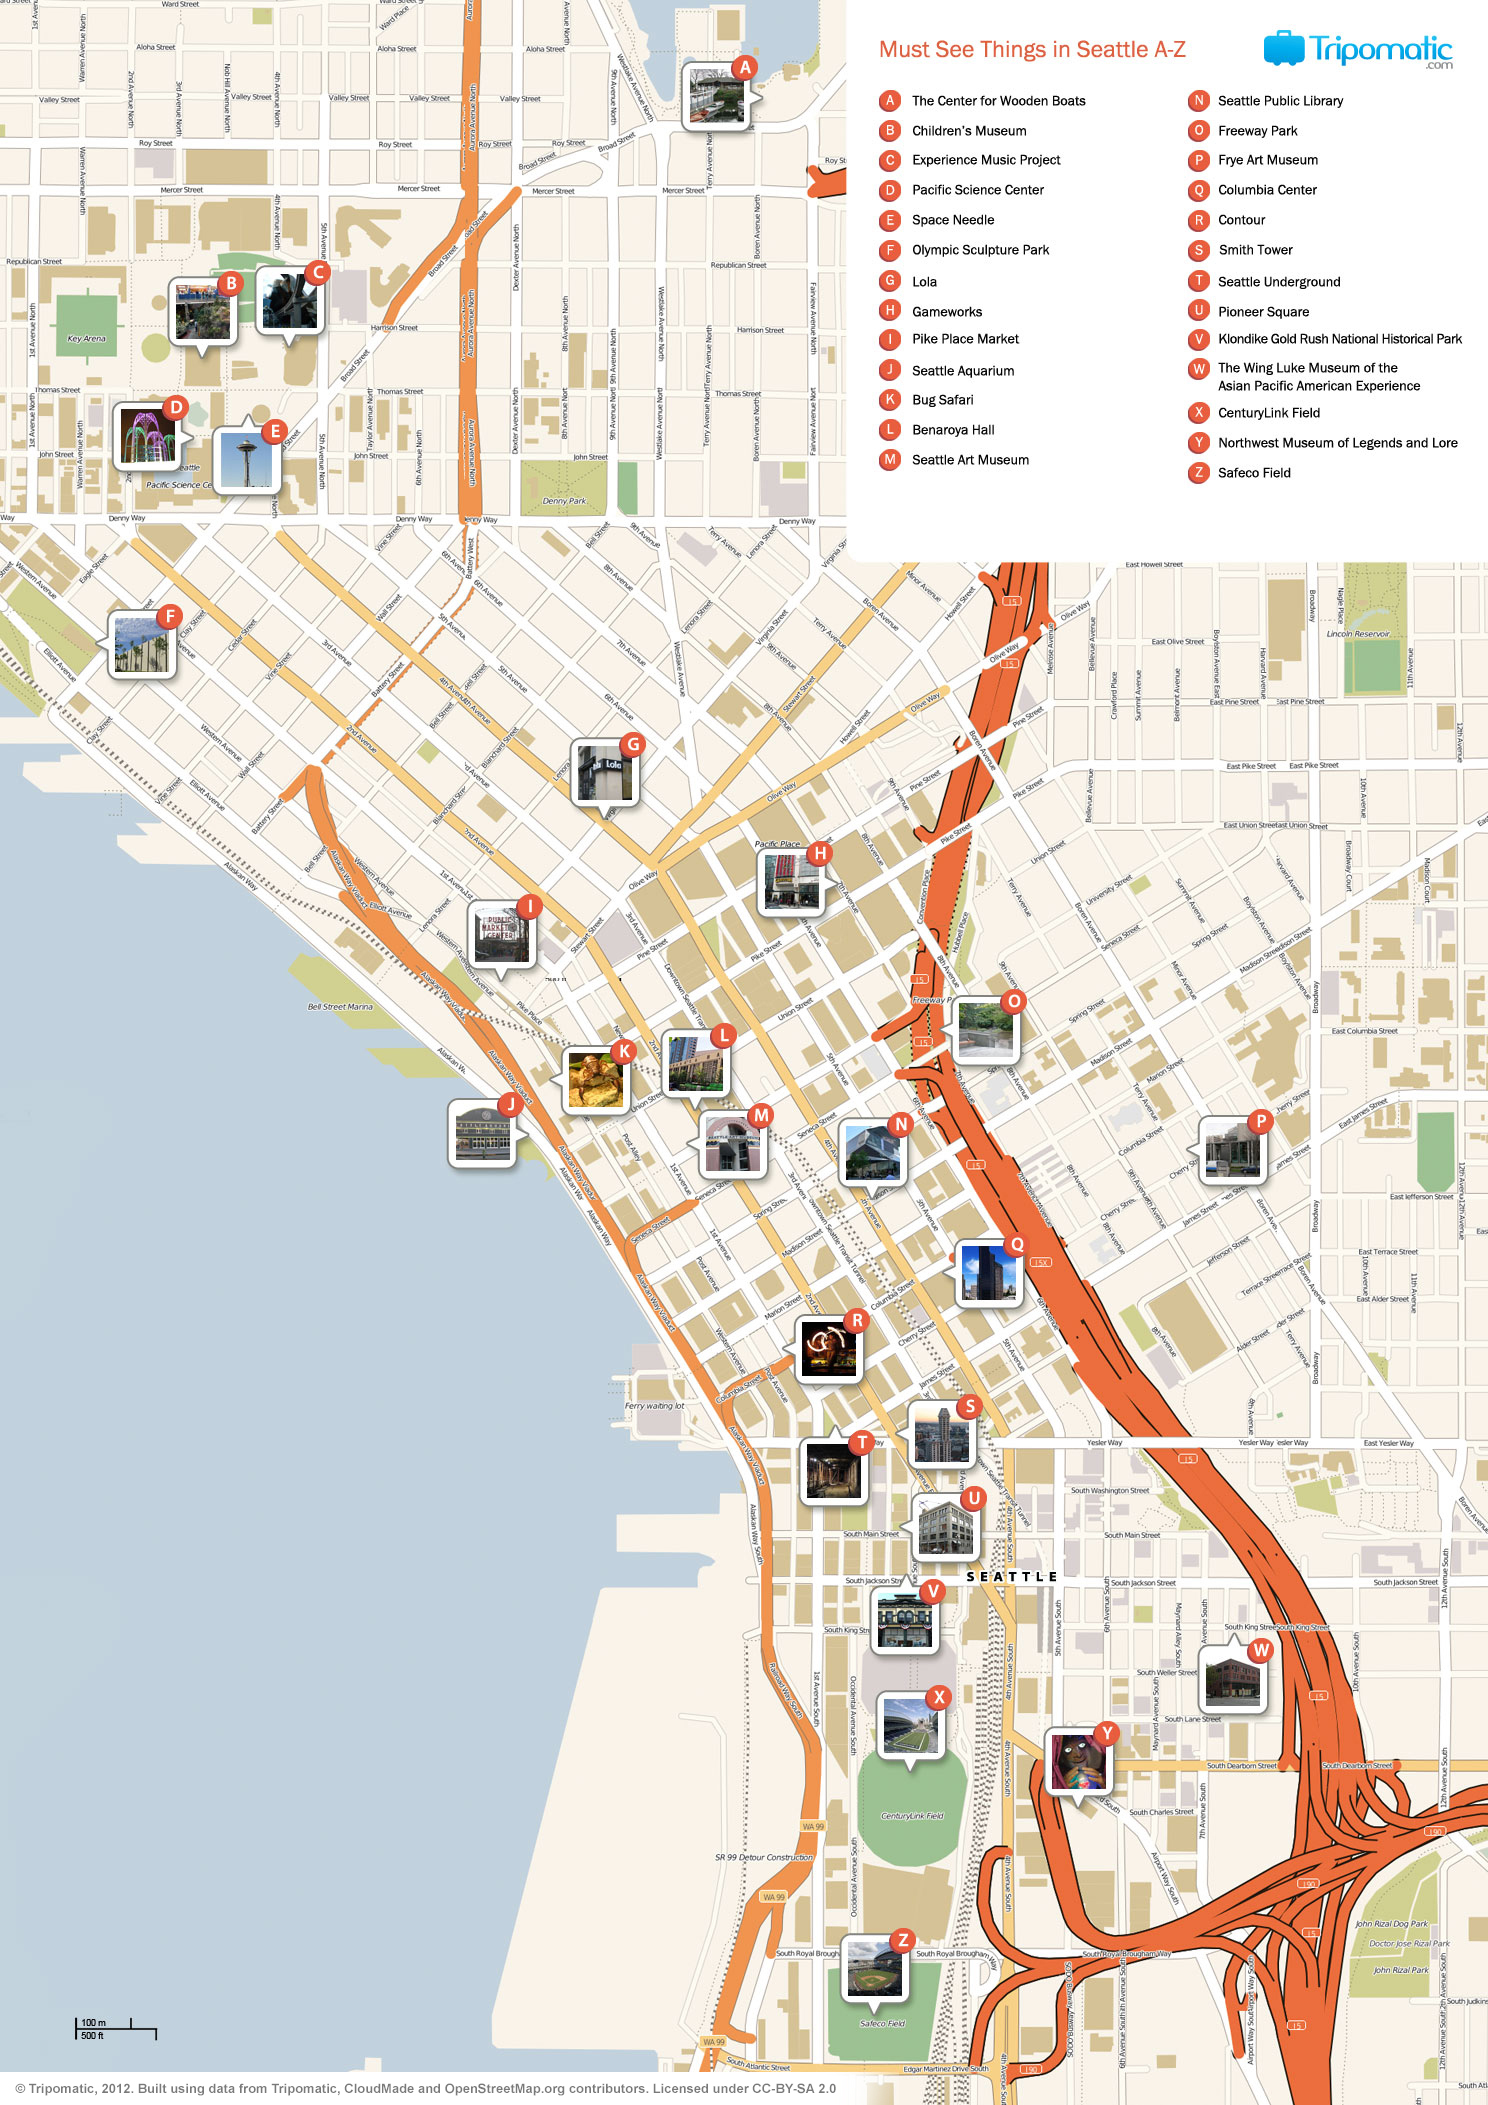 FileSeattle printable tourist attractions mapjpg Wikimedia Commons – Tourist Map Of Seattle